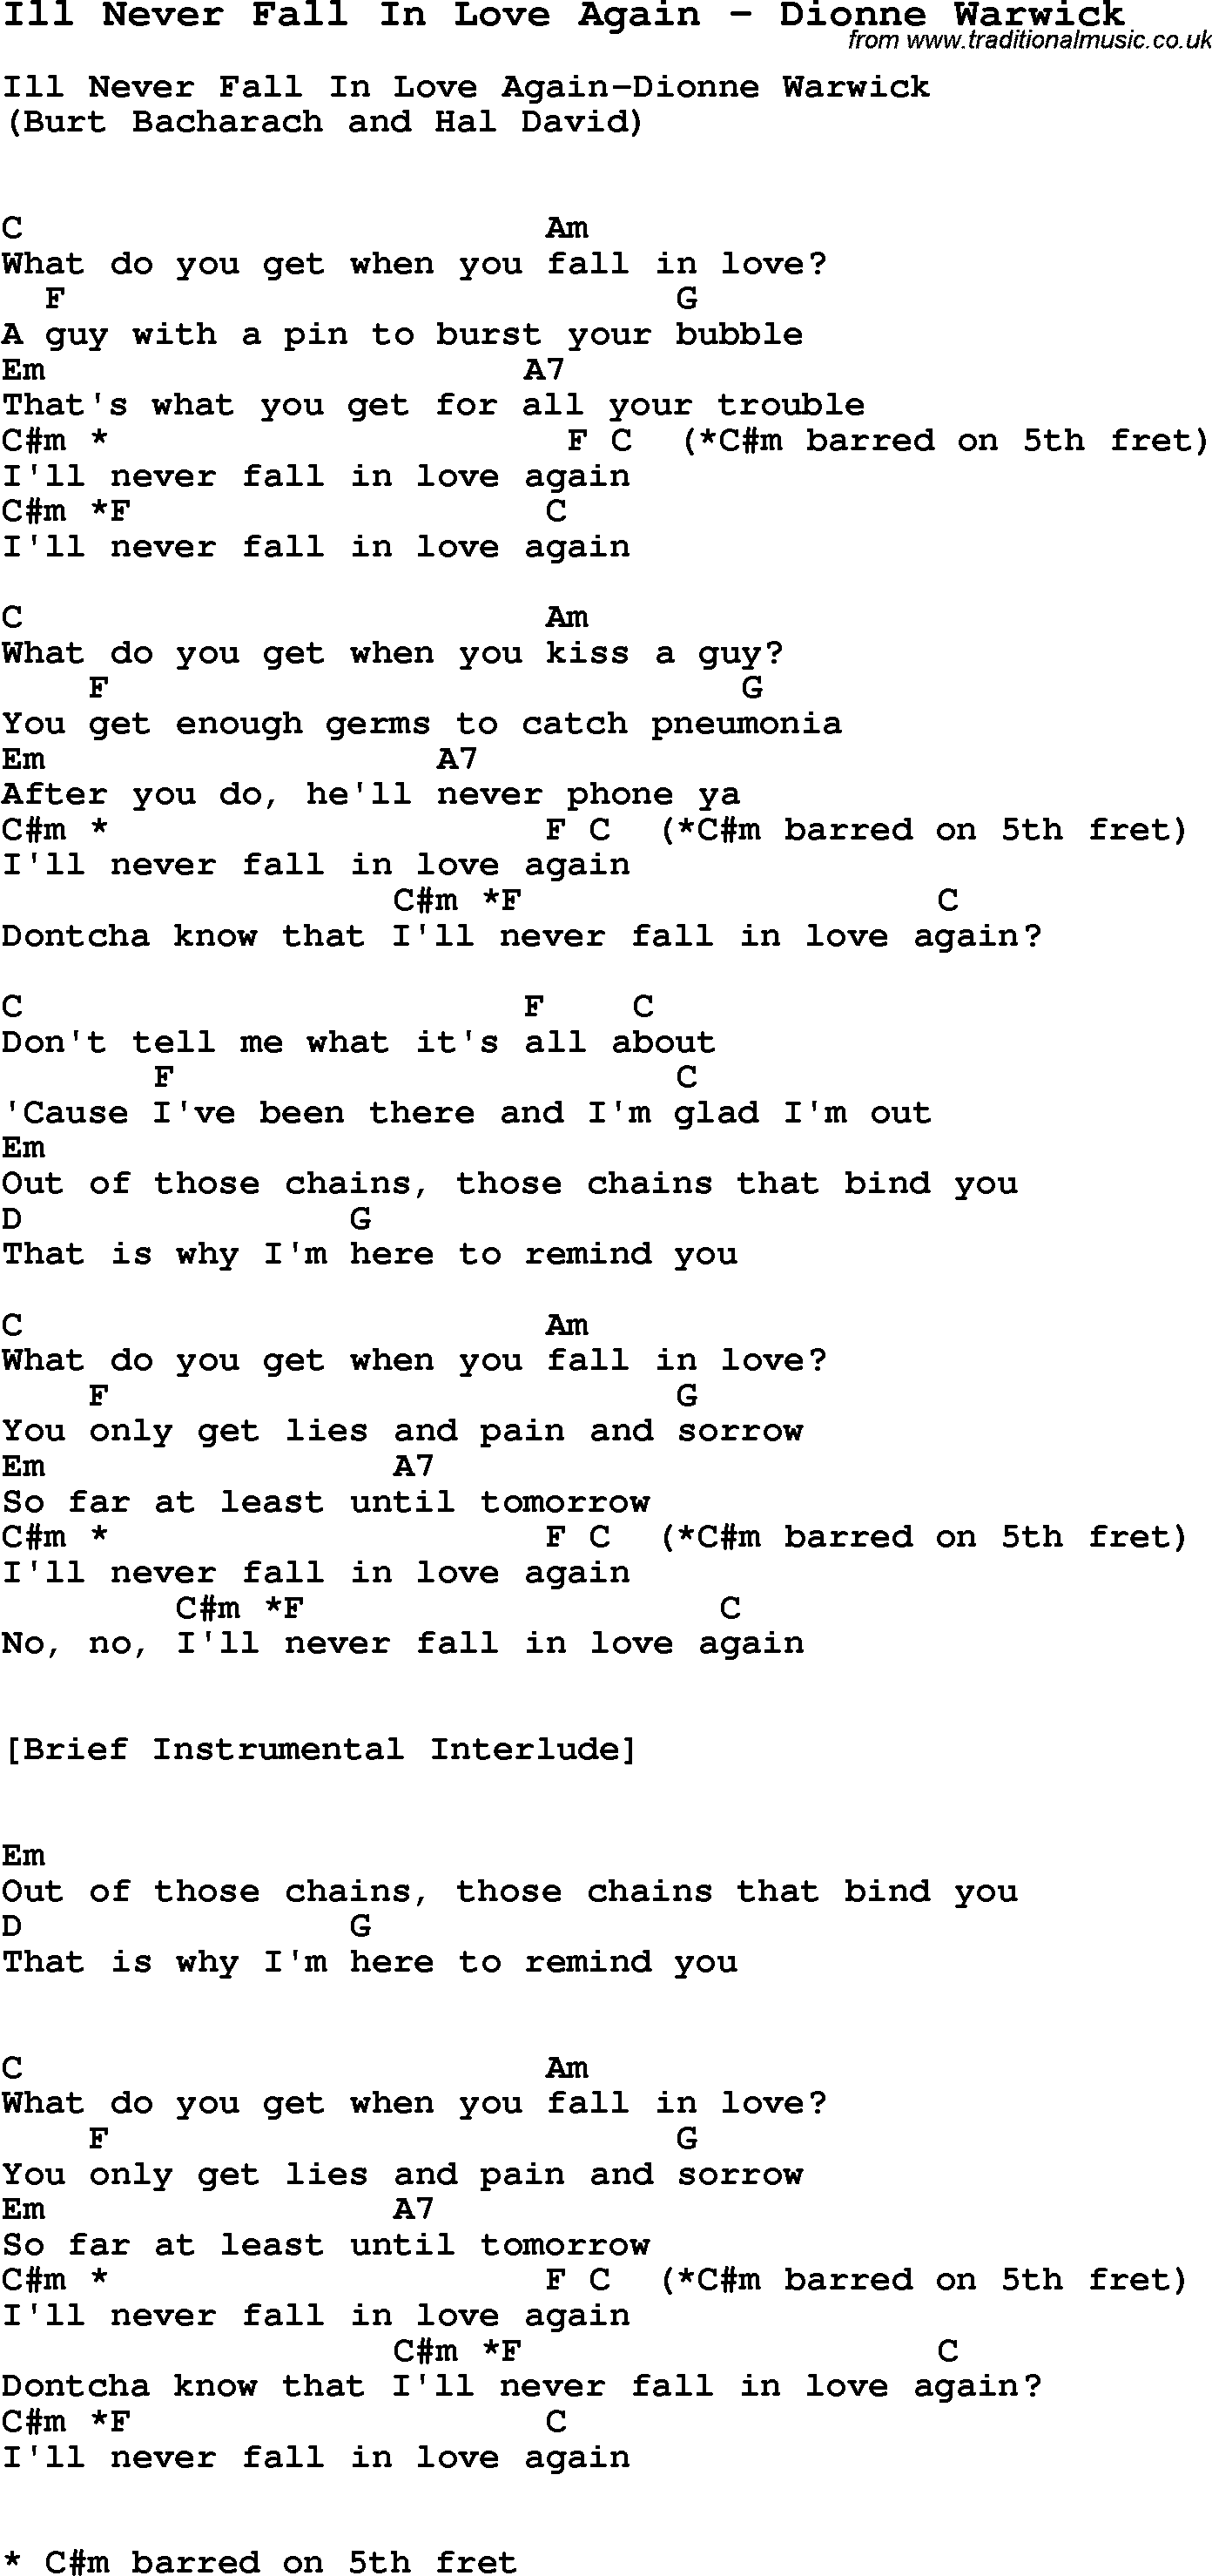 Song Ill Never Fall In Love Again By Dionne Warwick With Lyrics For